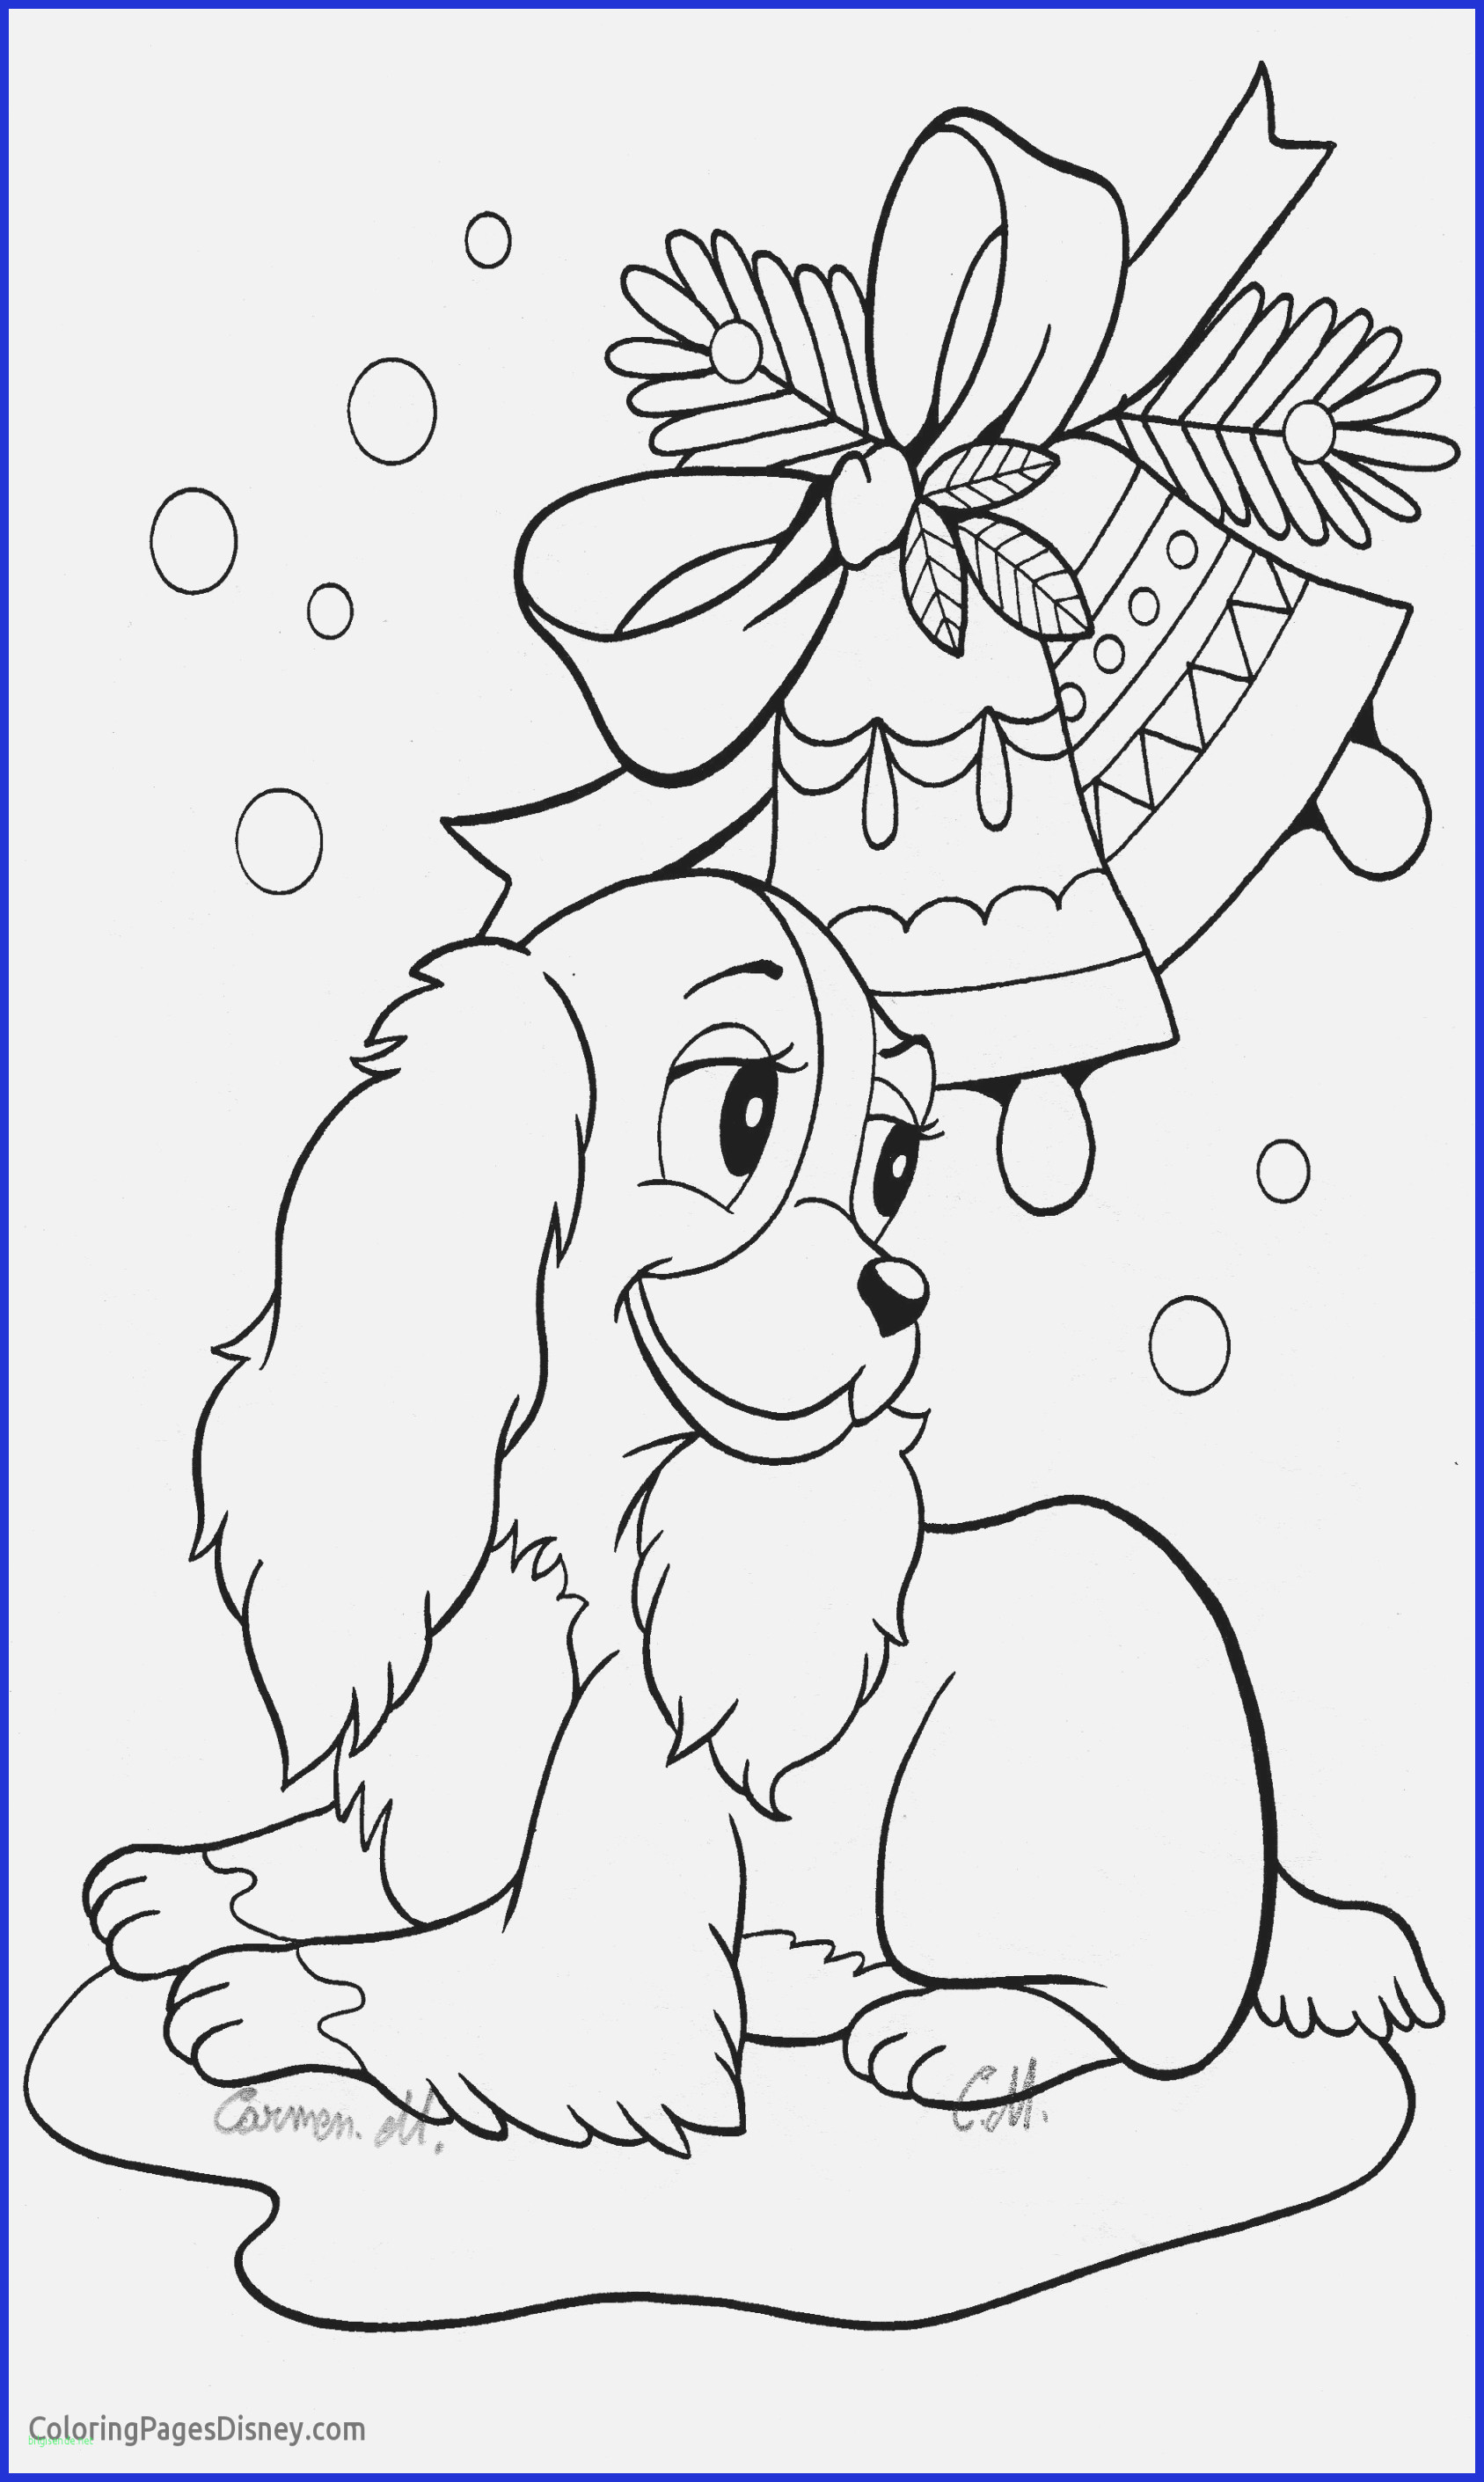 photo about Printable Lion Coloring Pages called 19 Printable Lion Coloring Internet pages Range - Coloring Sheets